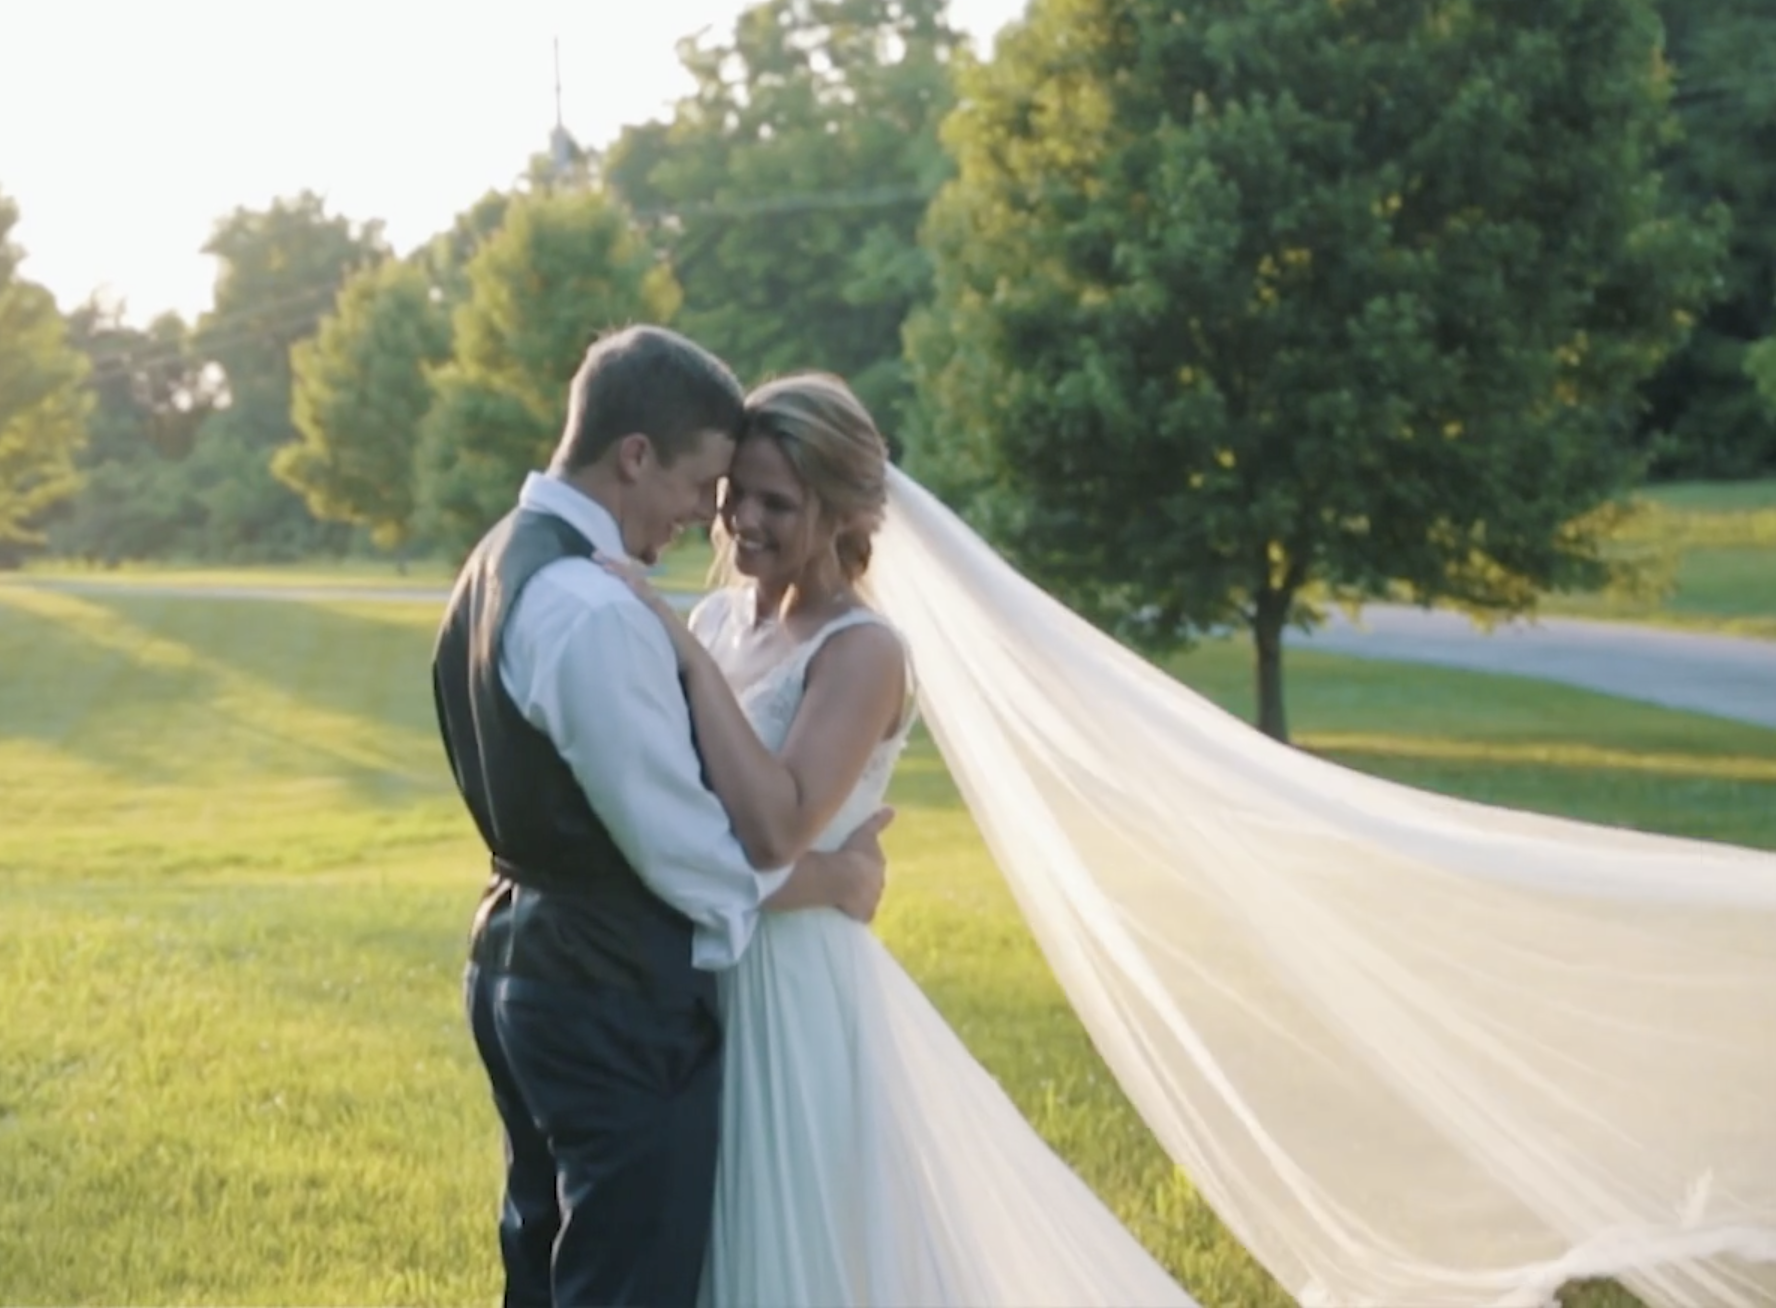 33404Payton + Lane | Elkins Grove, Kentucky | Elkins Grove Wedding Venue